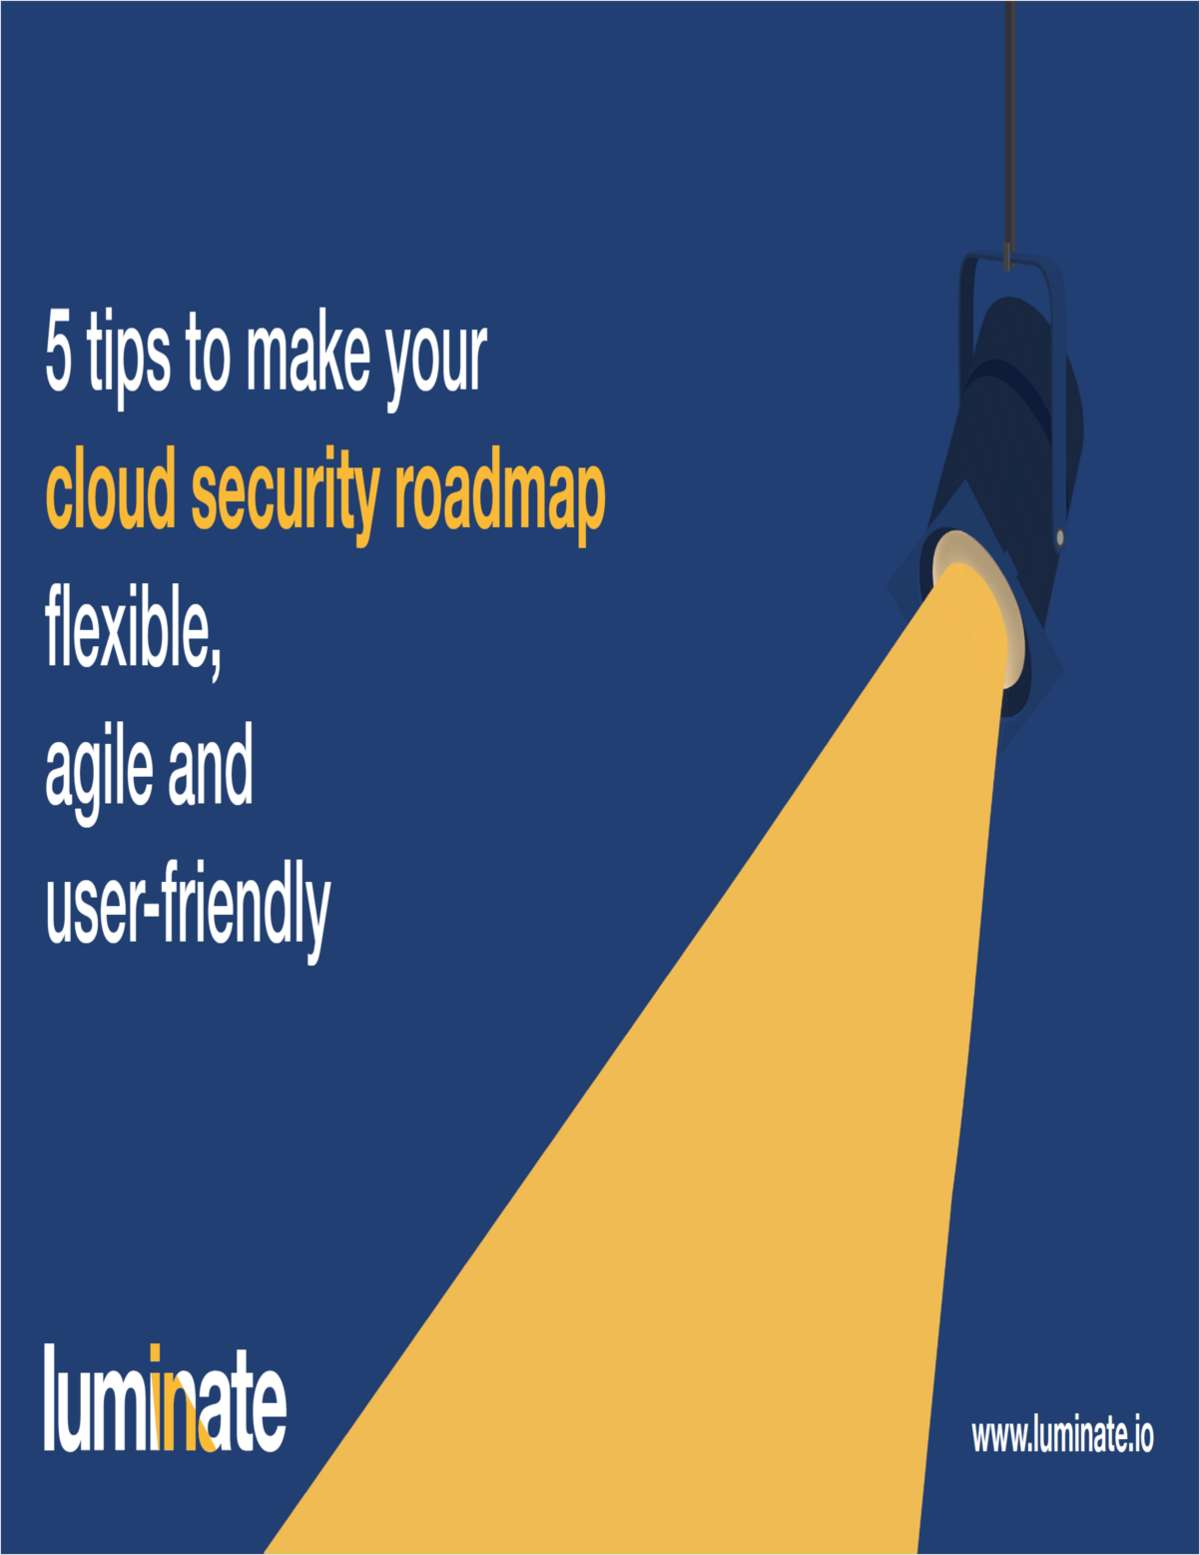 5 Tips to Make Your Cloud Security Roadmap Flexible, Agile and User-Friendly